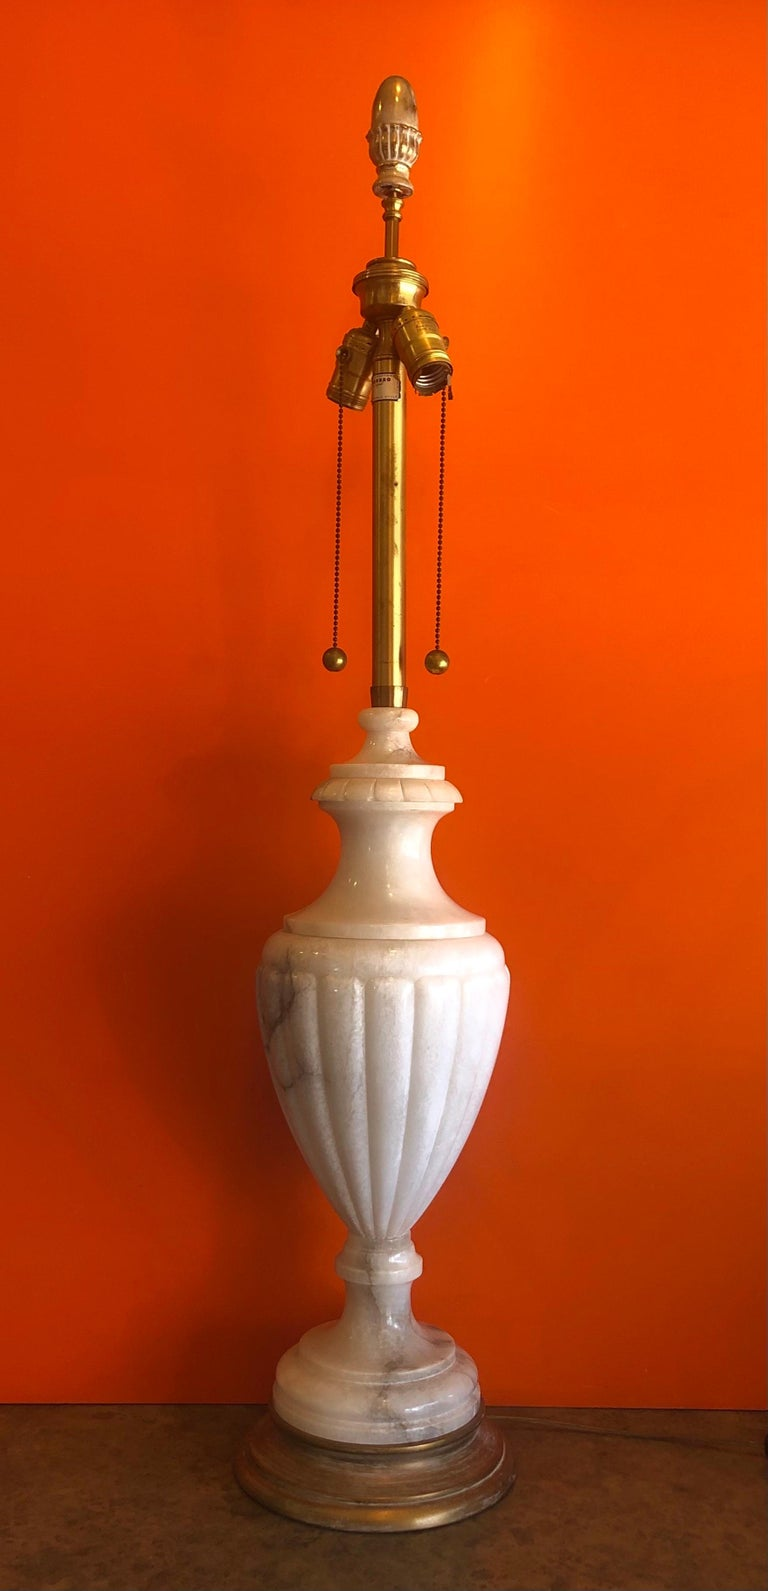 Incredible monumental midcentury hand carved marble table lamp by Marbro Lamp Company, circa 1960s. This lamp is massive and very impressive standing 40